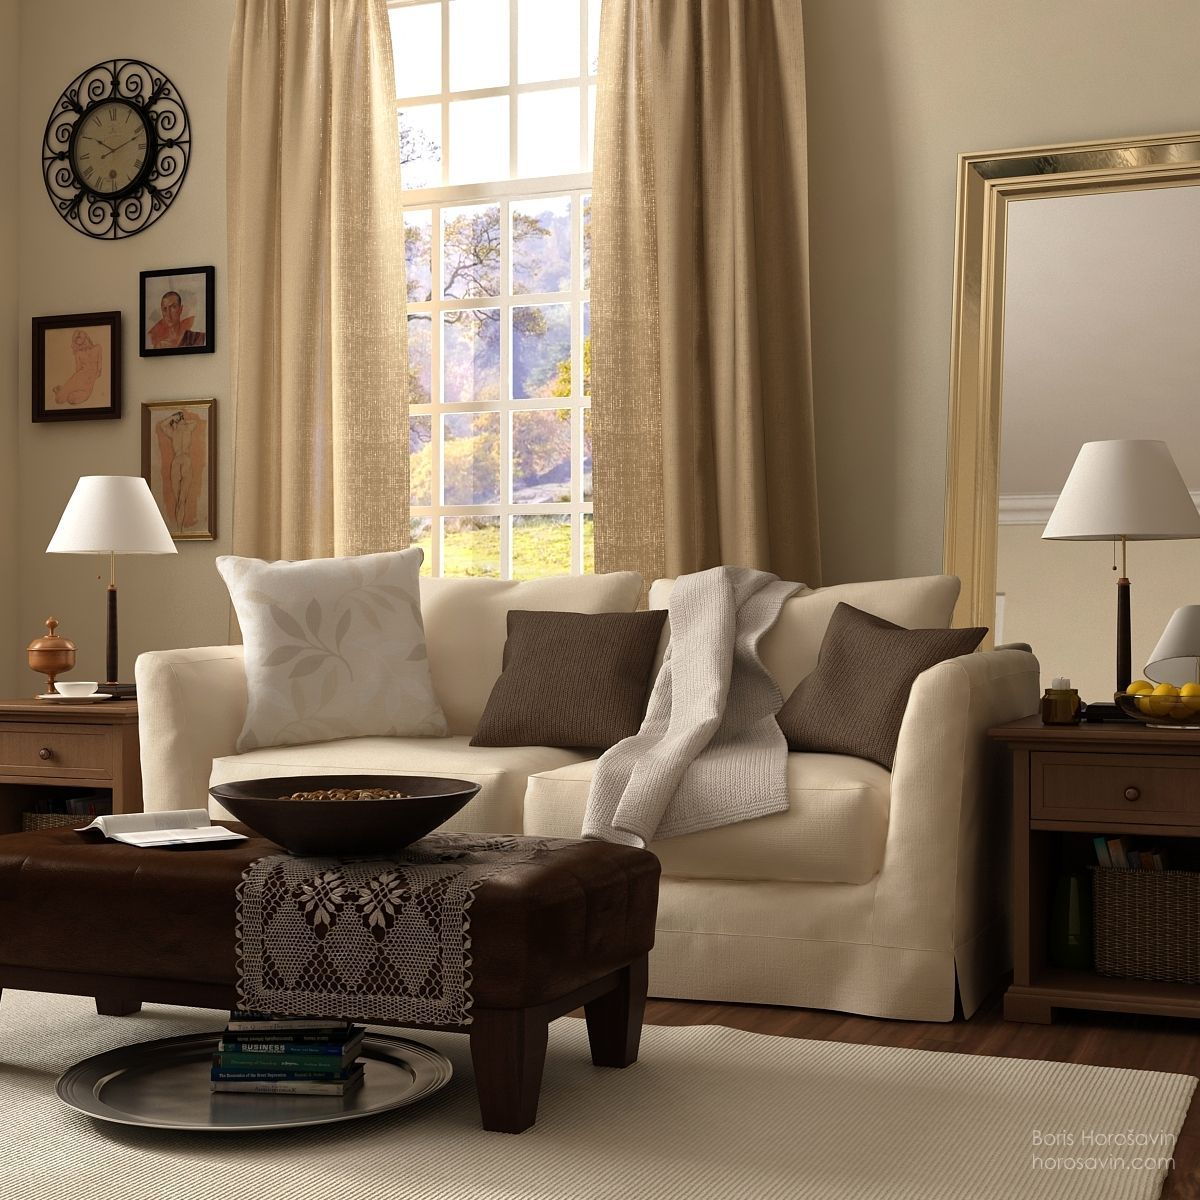 Beyond White Bliss Of Soft And Elegant Beige Living Rooms Brown Living Room Beige Living Rooms Brown Living Room Decor Elegant brown living rooms